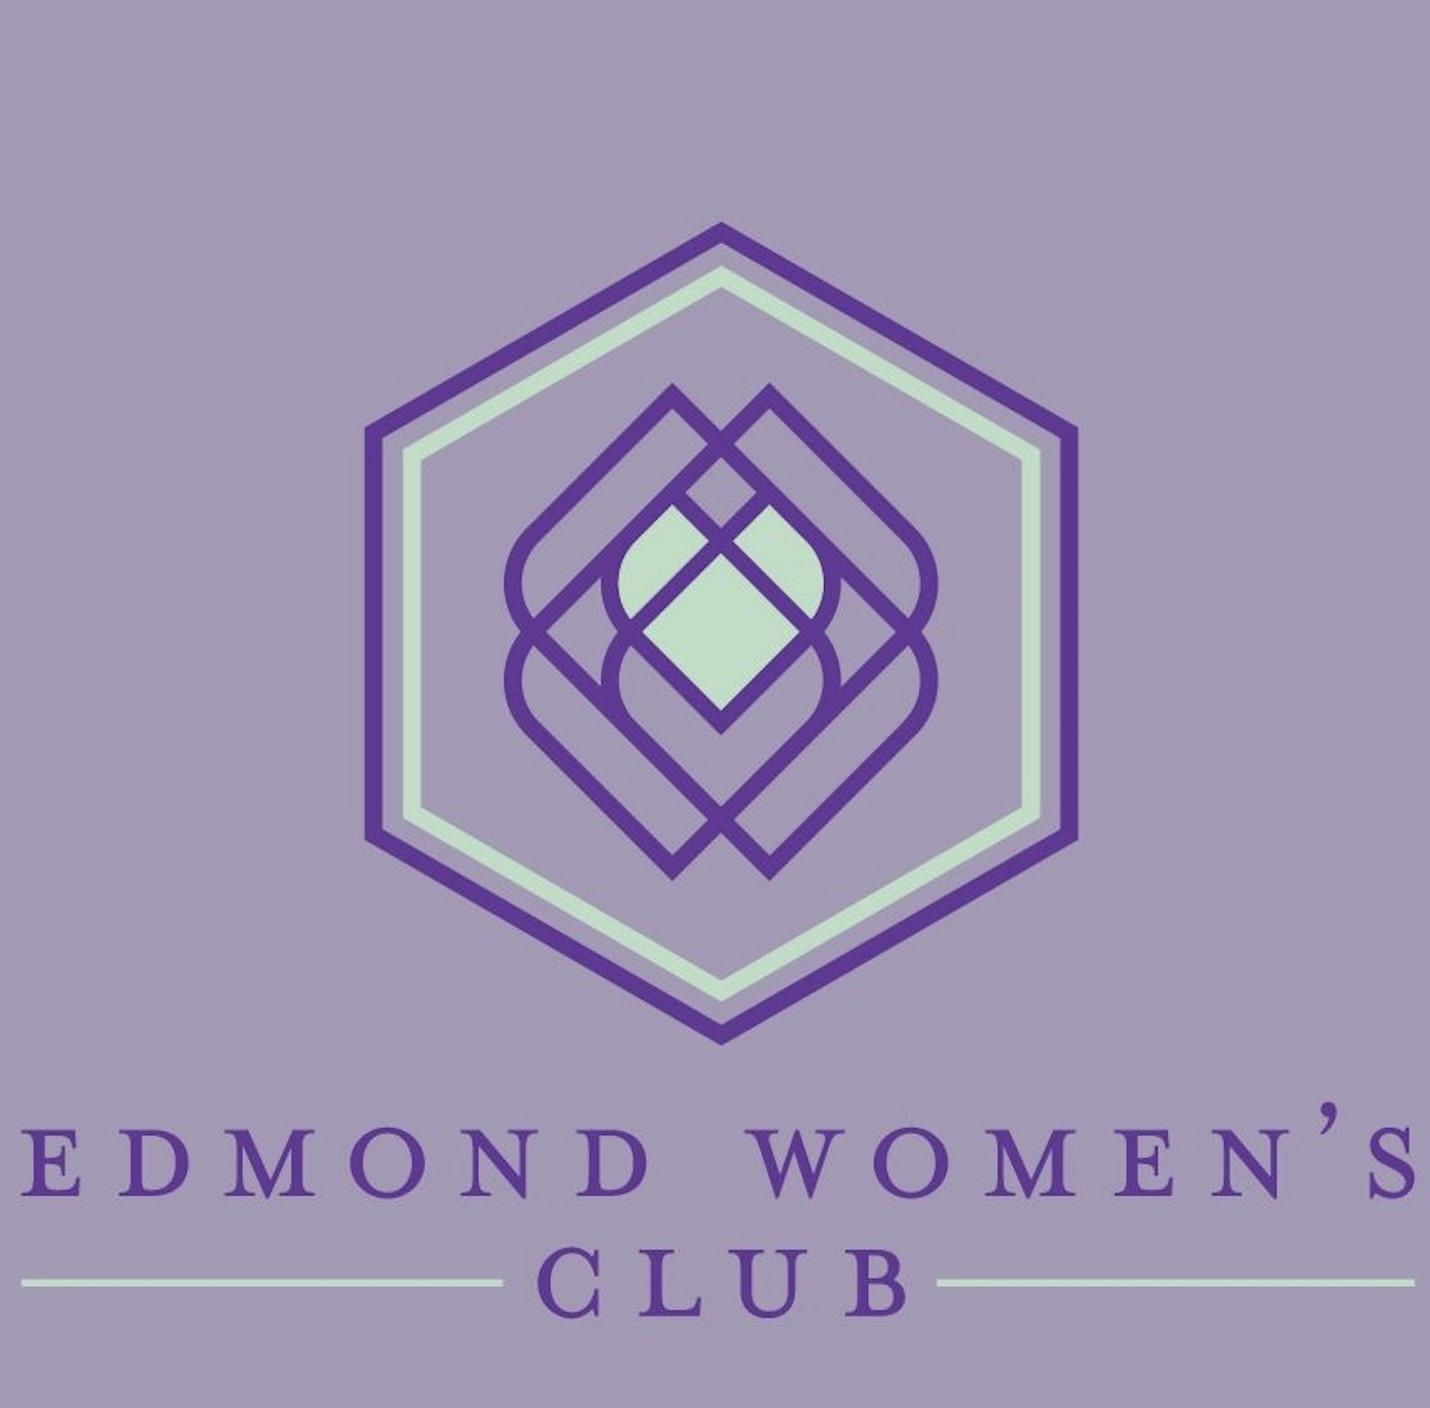 Edmond Women's Club